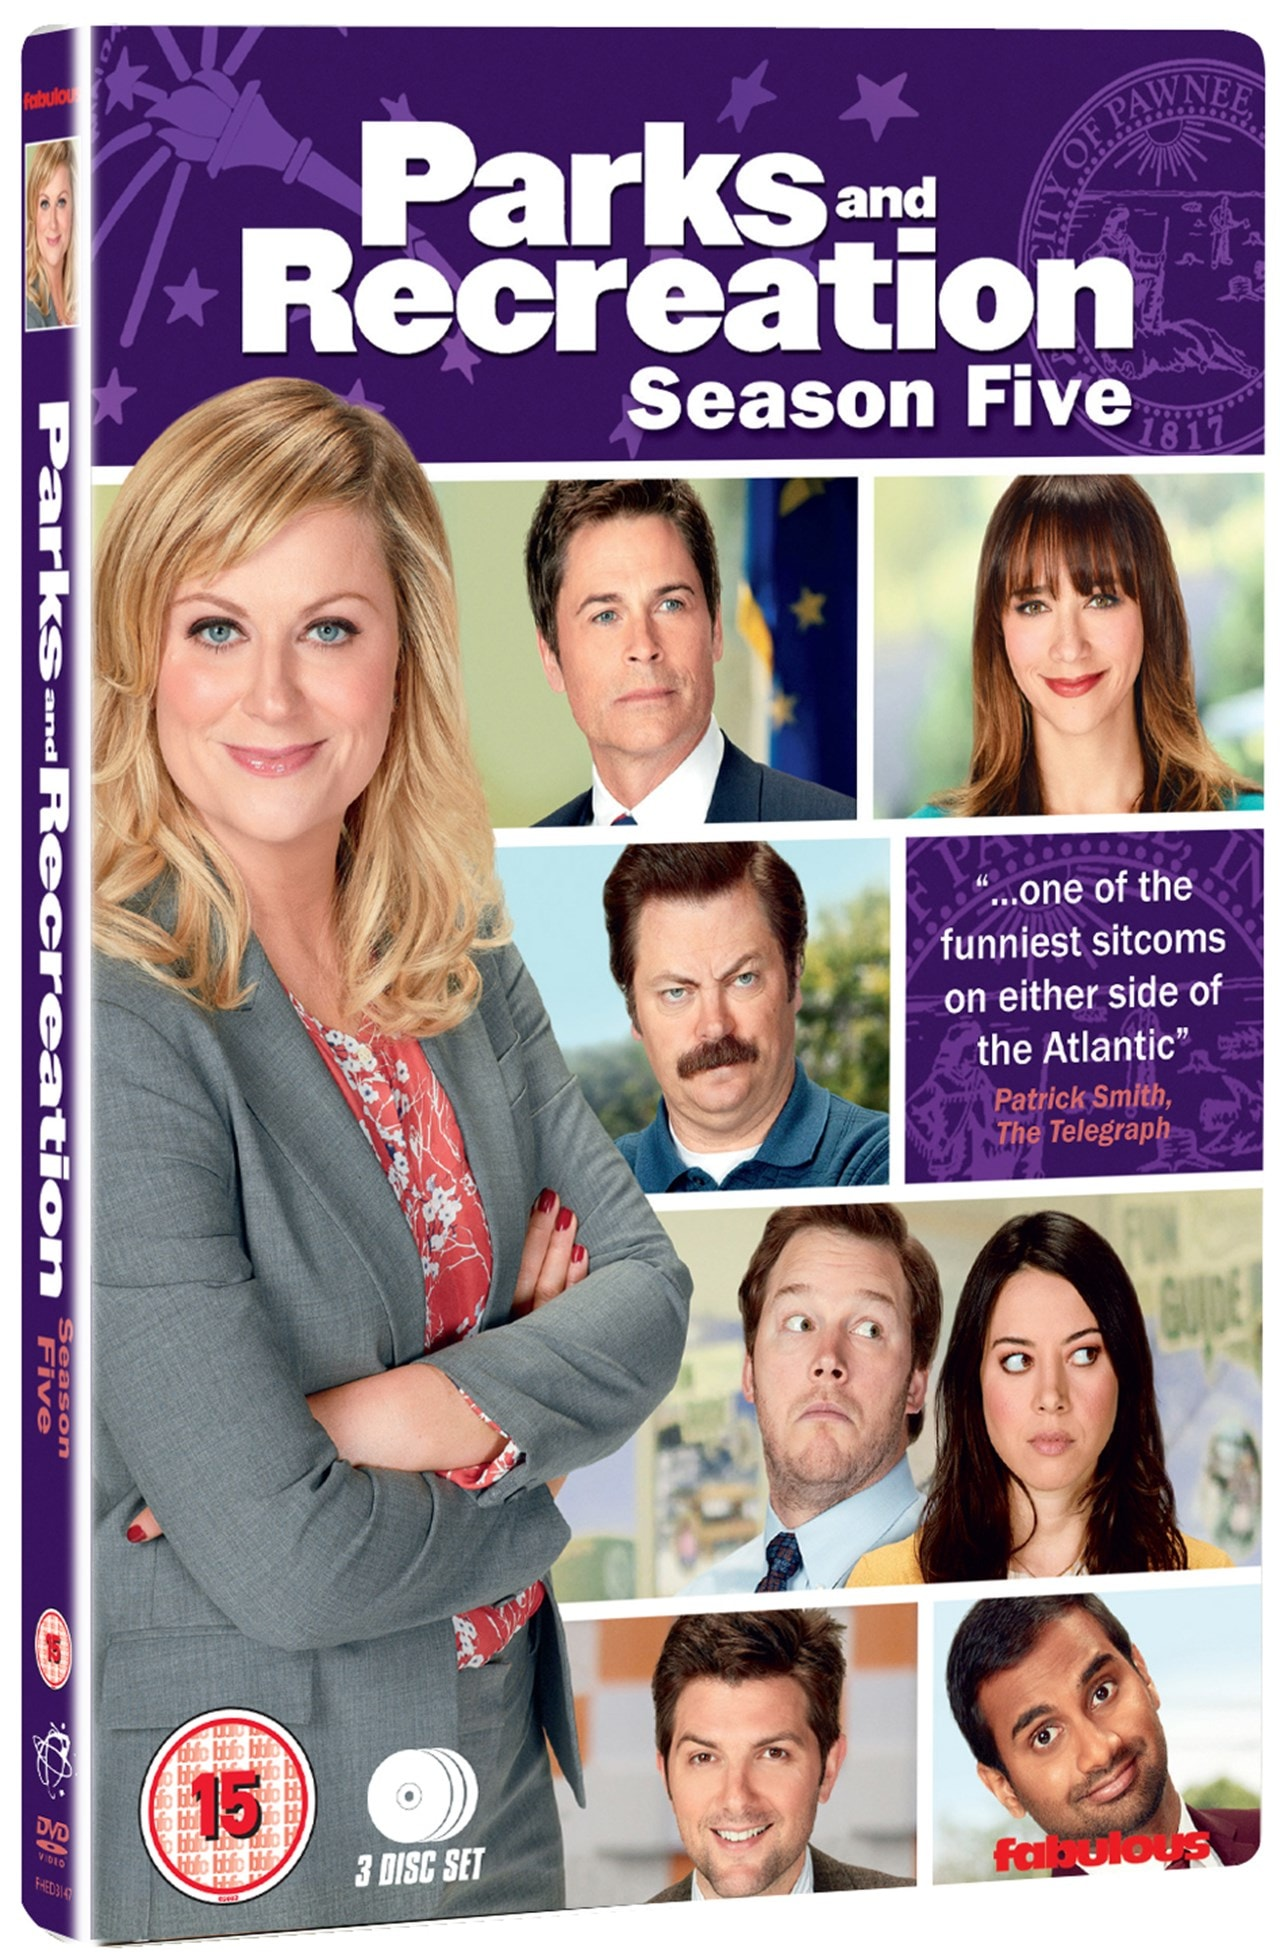 Parks and Recreation: Season Five - 2